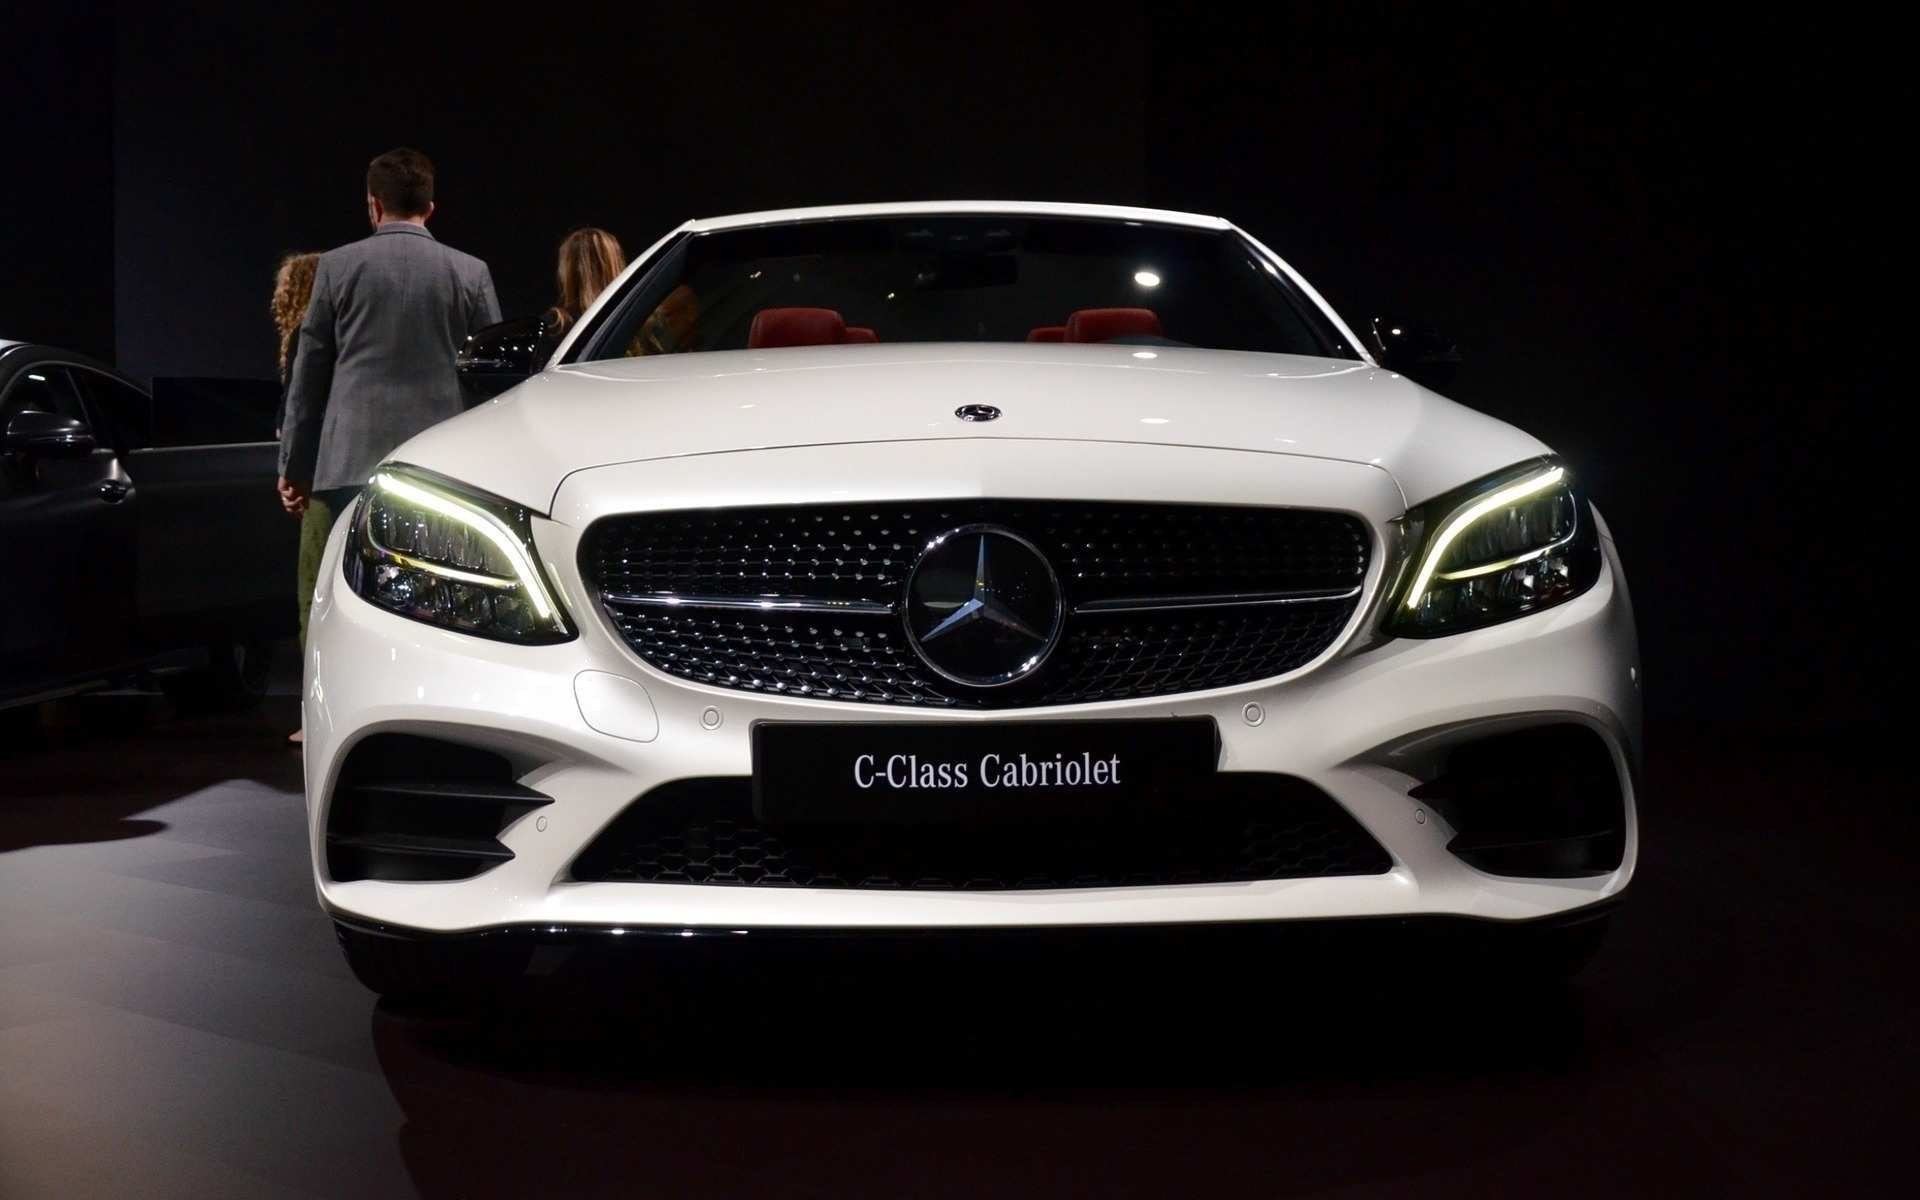 66 Best Review C Class Mercedes 2019 Release Specs And Review New Concept for C Class Mercedes 2019 Release Specs And Review